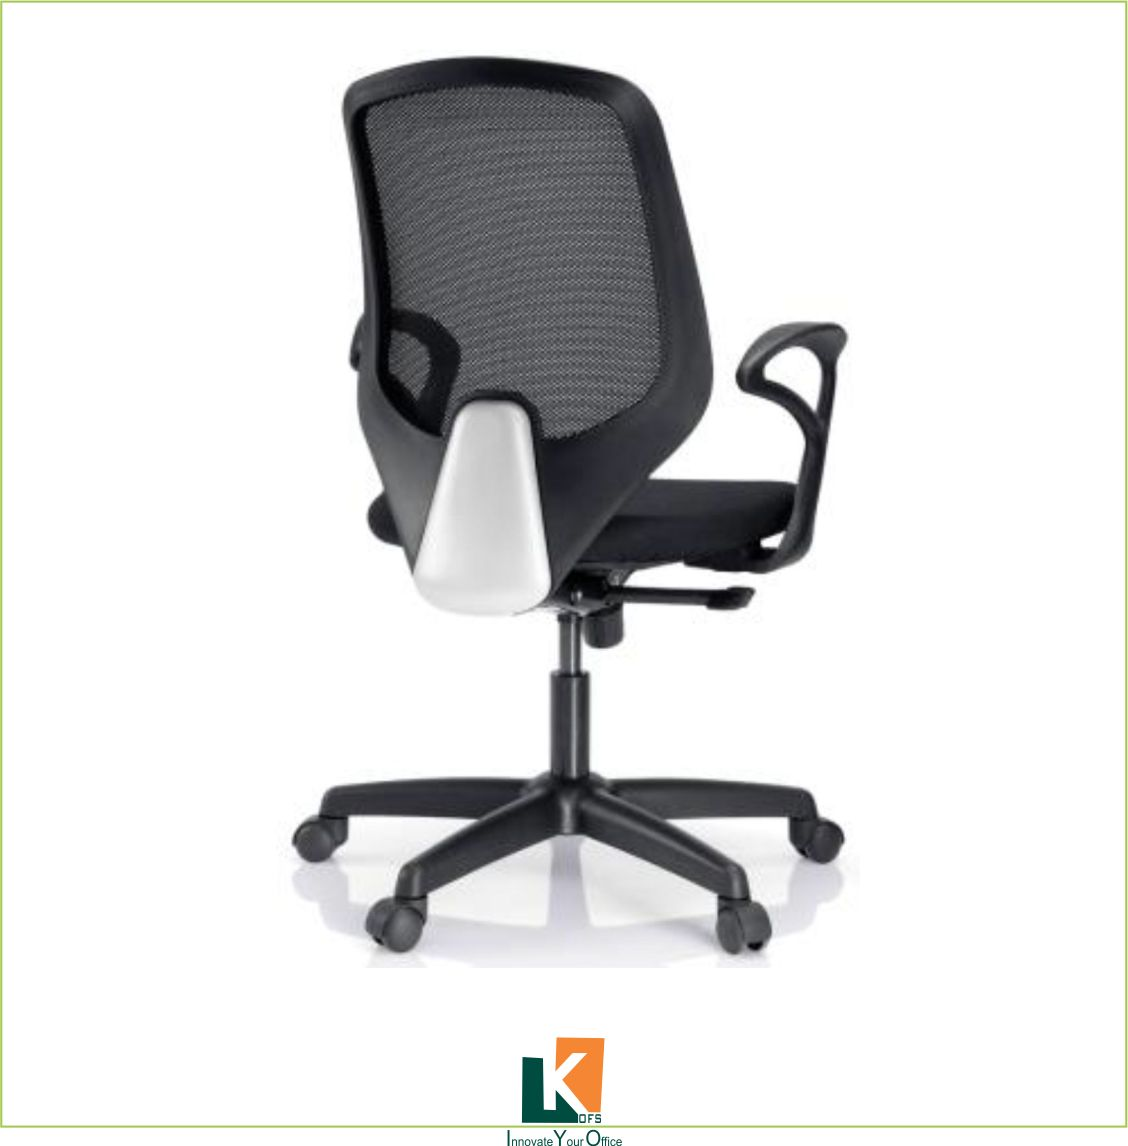 Low Back workstation chair